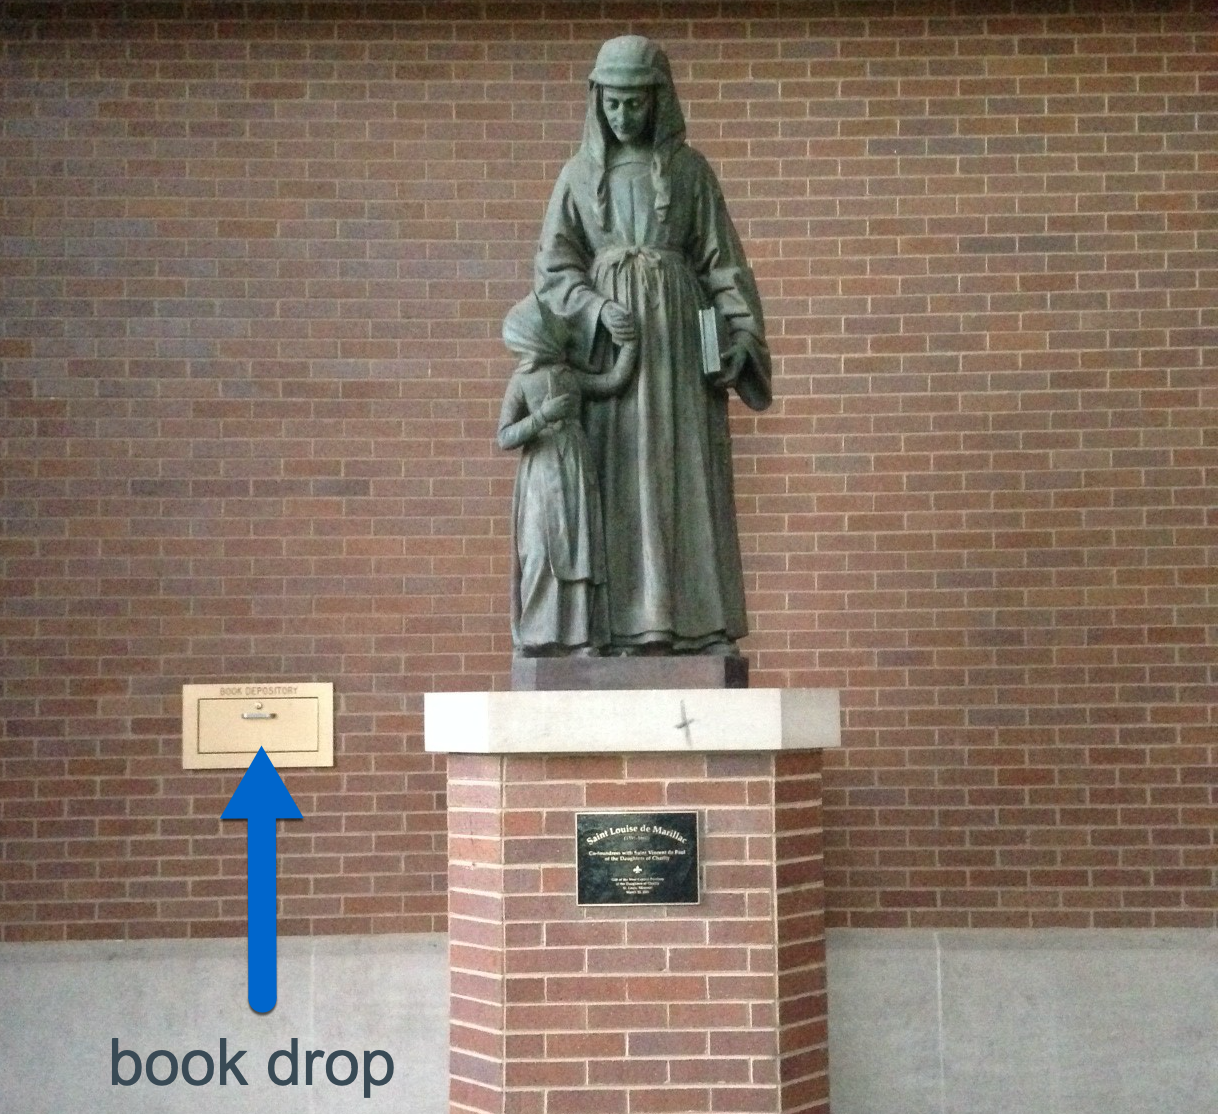 Image Shows rectangular bronze book drop drawer embedded in brick all behind the Louise de Marillac statue on the west quad side of the John T. Richardson Library